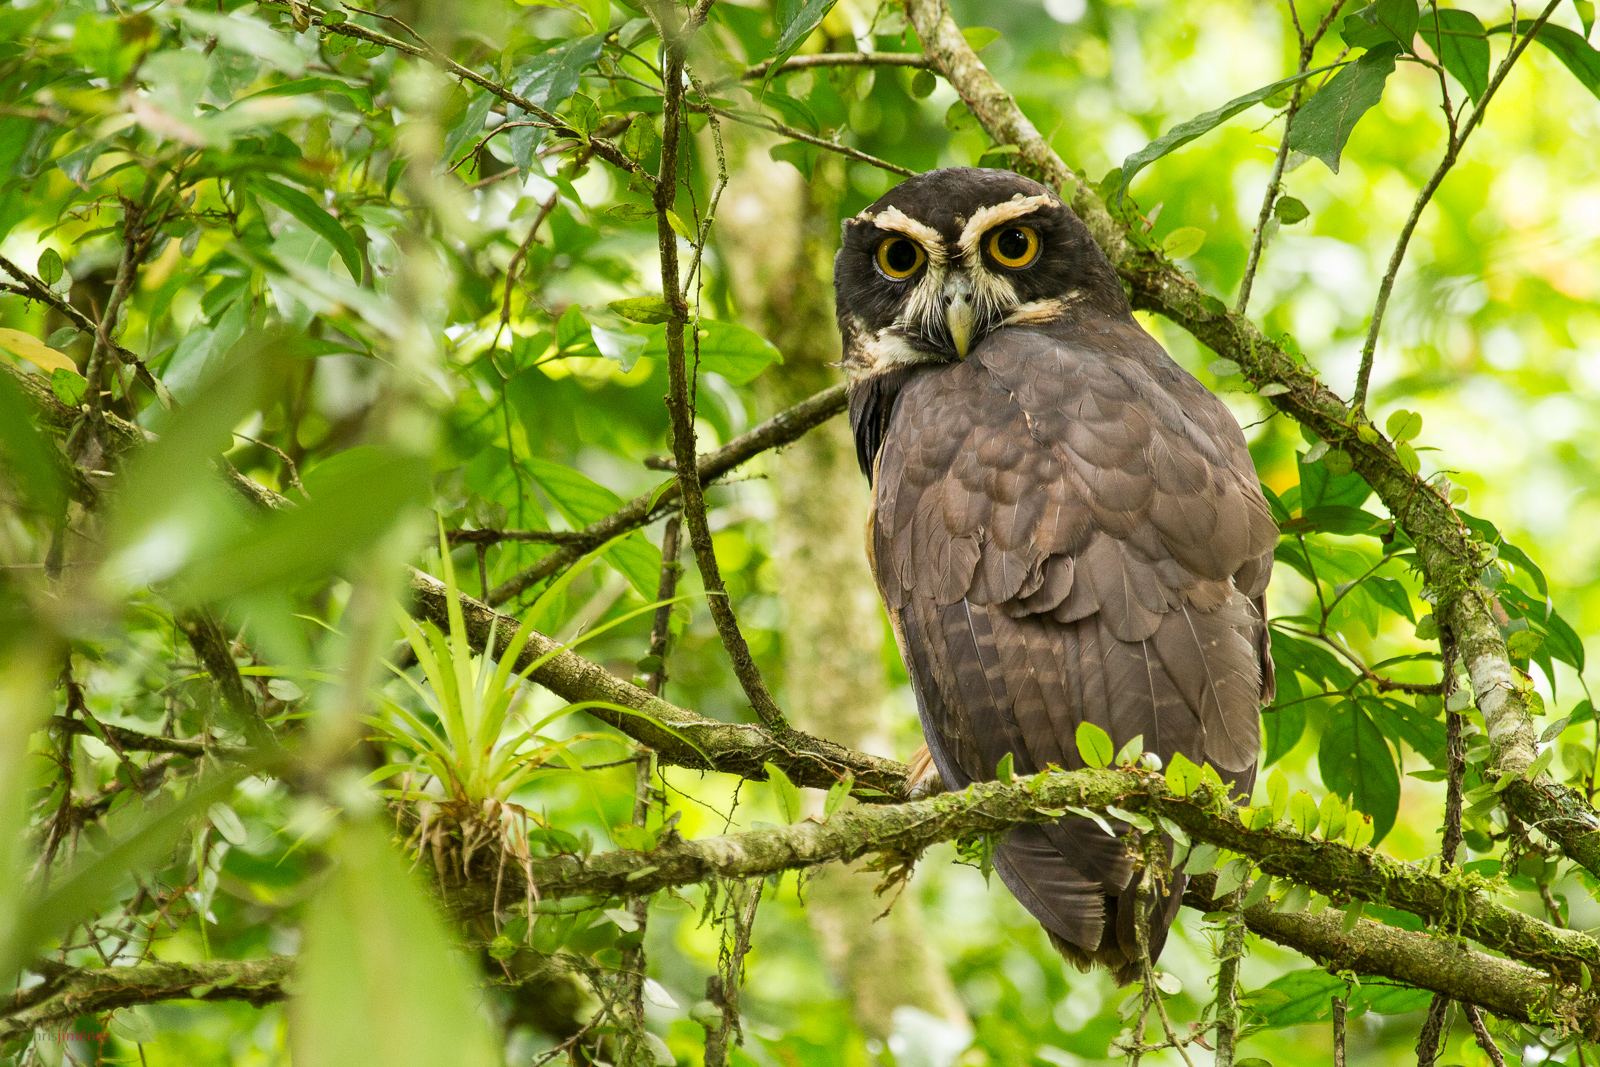 Spectacle Owl at the Caribbean lowlands of Costa Rica